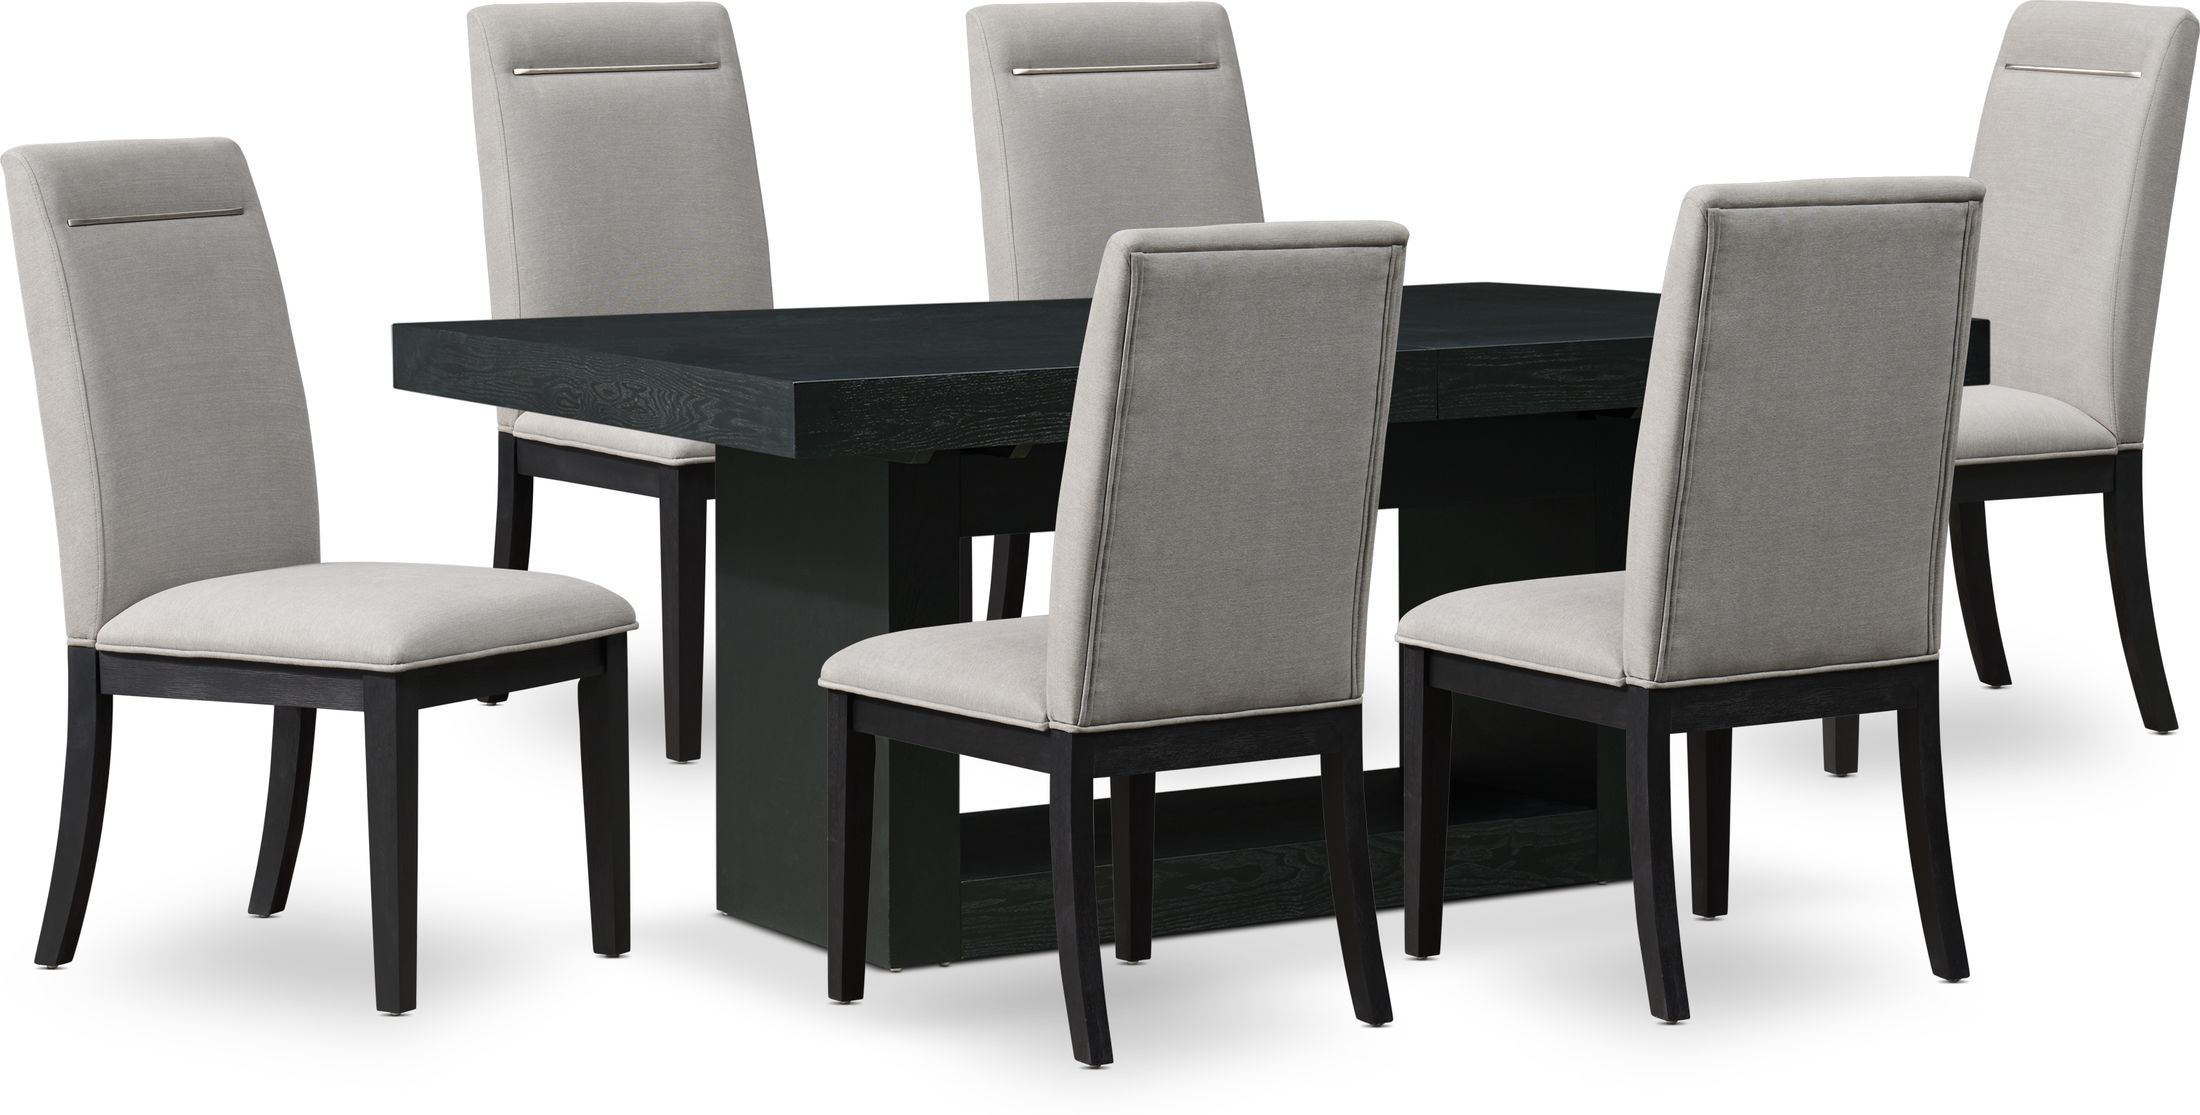 Banks Dining Table With 6 Chairs In 2021 Black Dining Room Contemporary Dining Table Contemporary Kitchen Tables